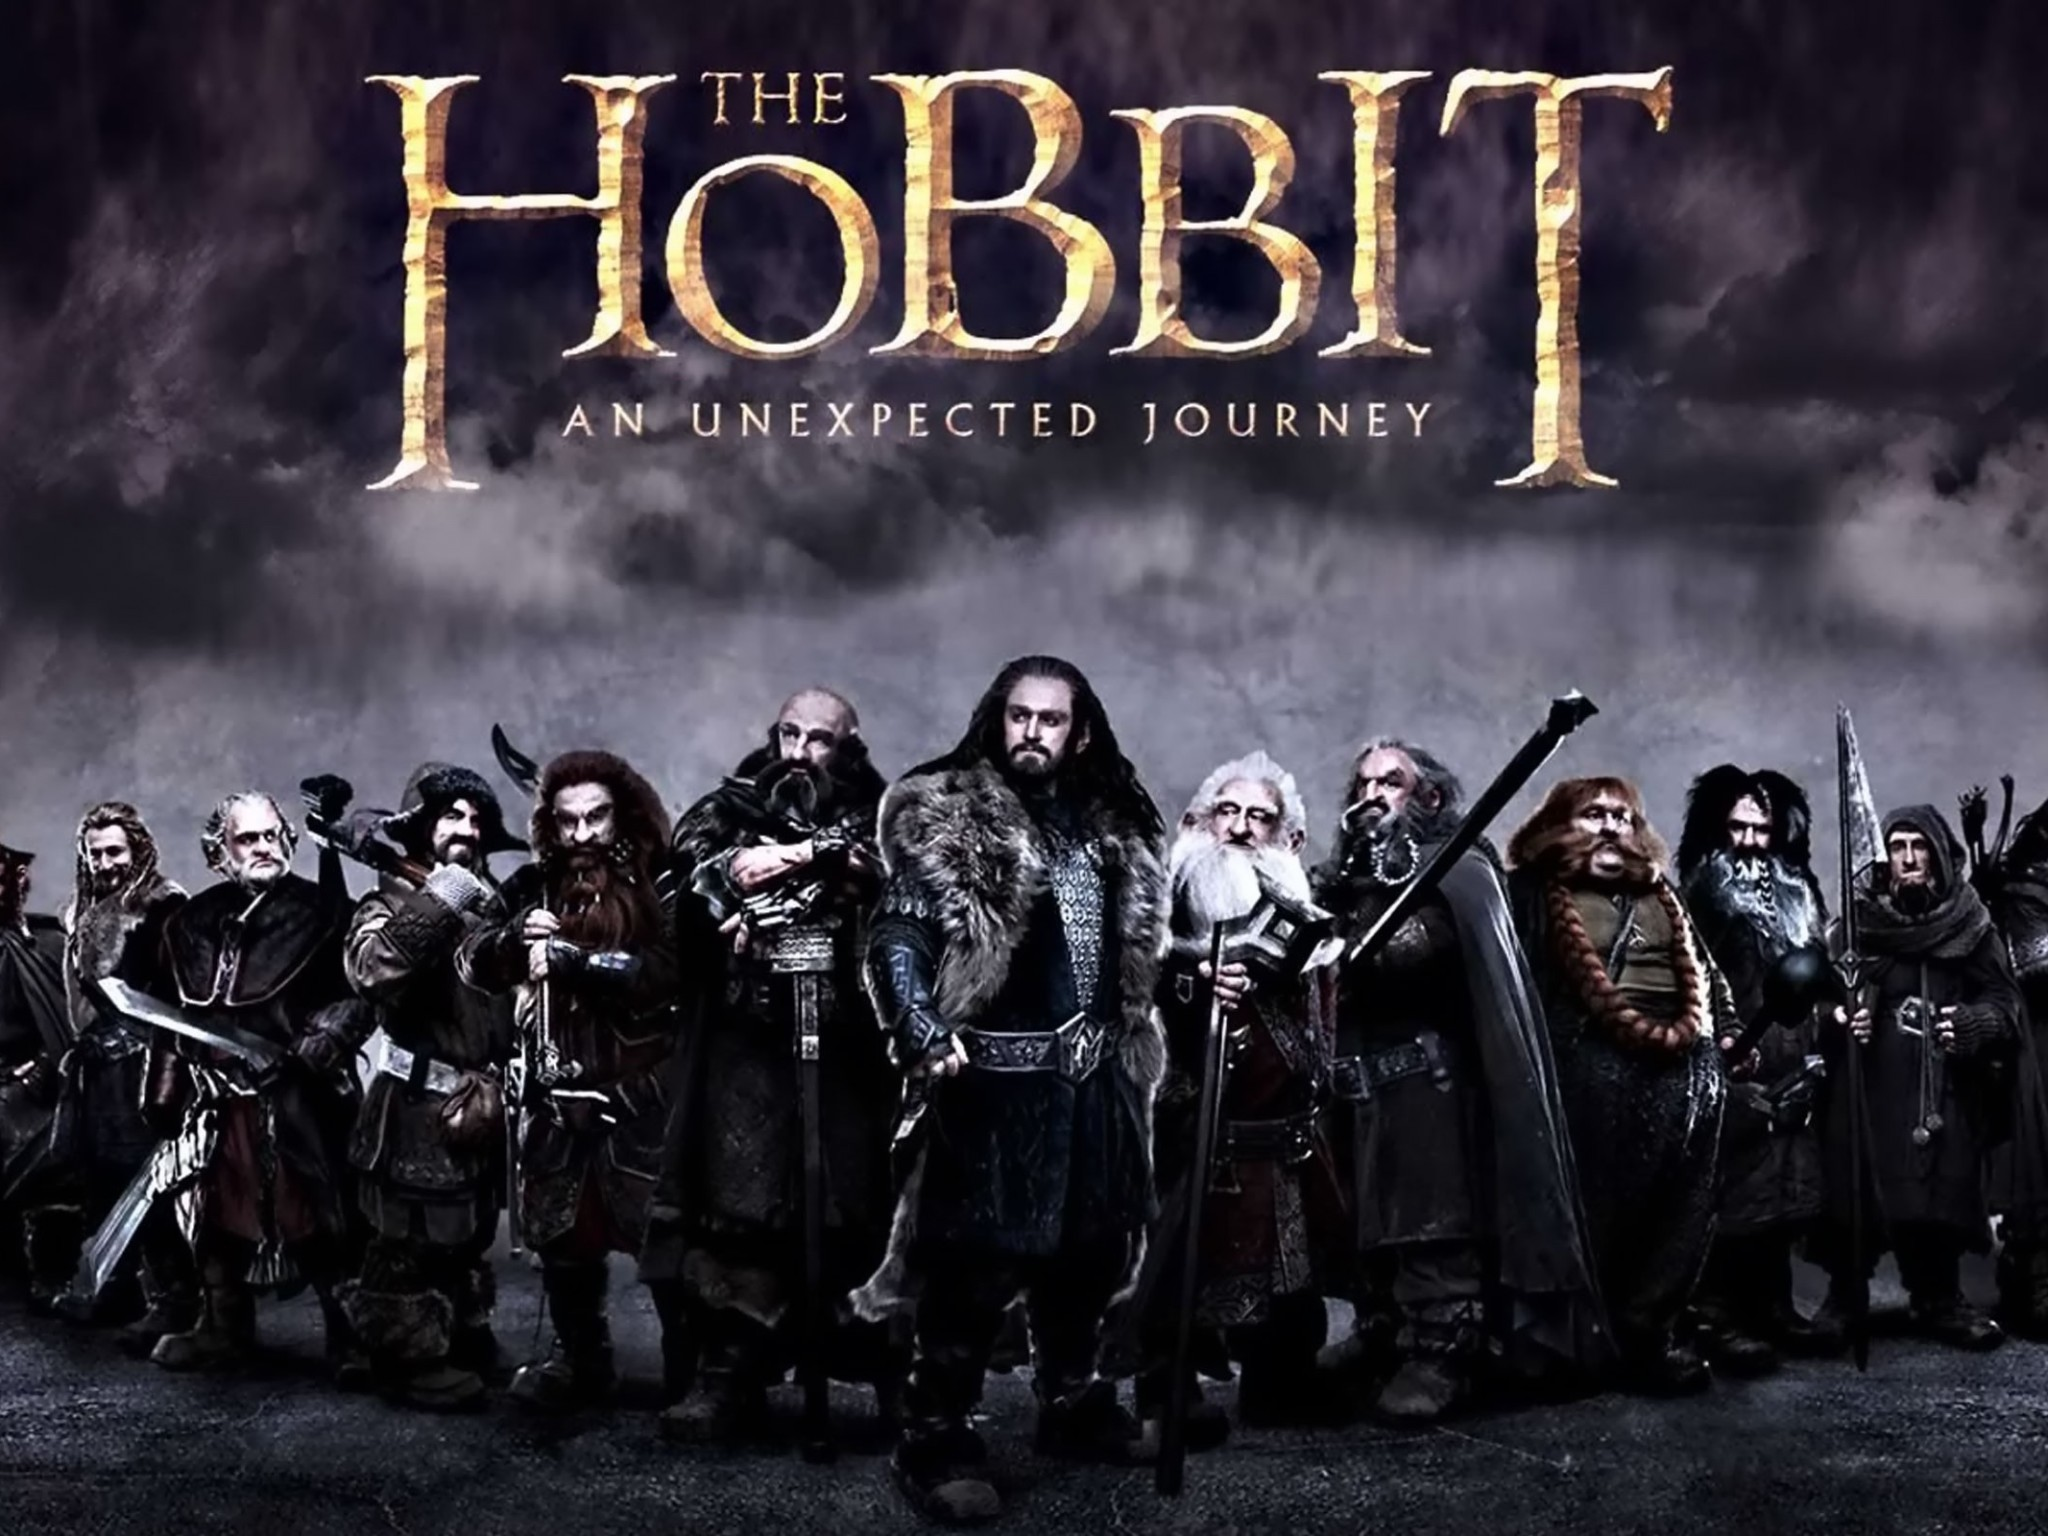 the-hobbit-an-unexpected-journey-movie-2560x1600-2048x1536.jpg